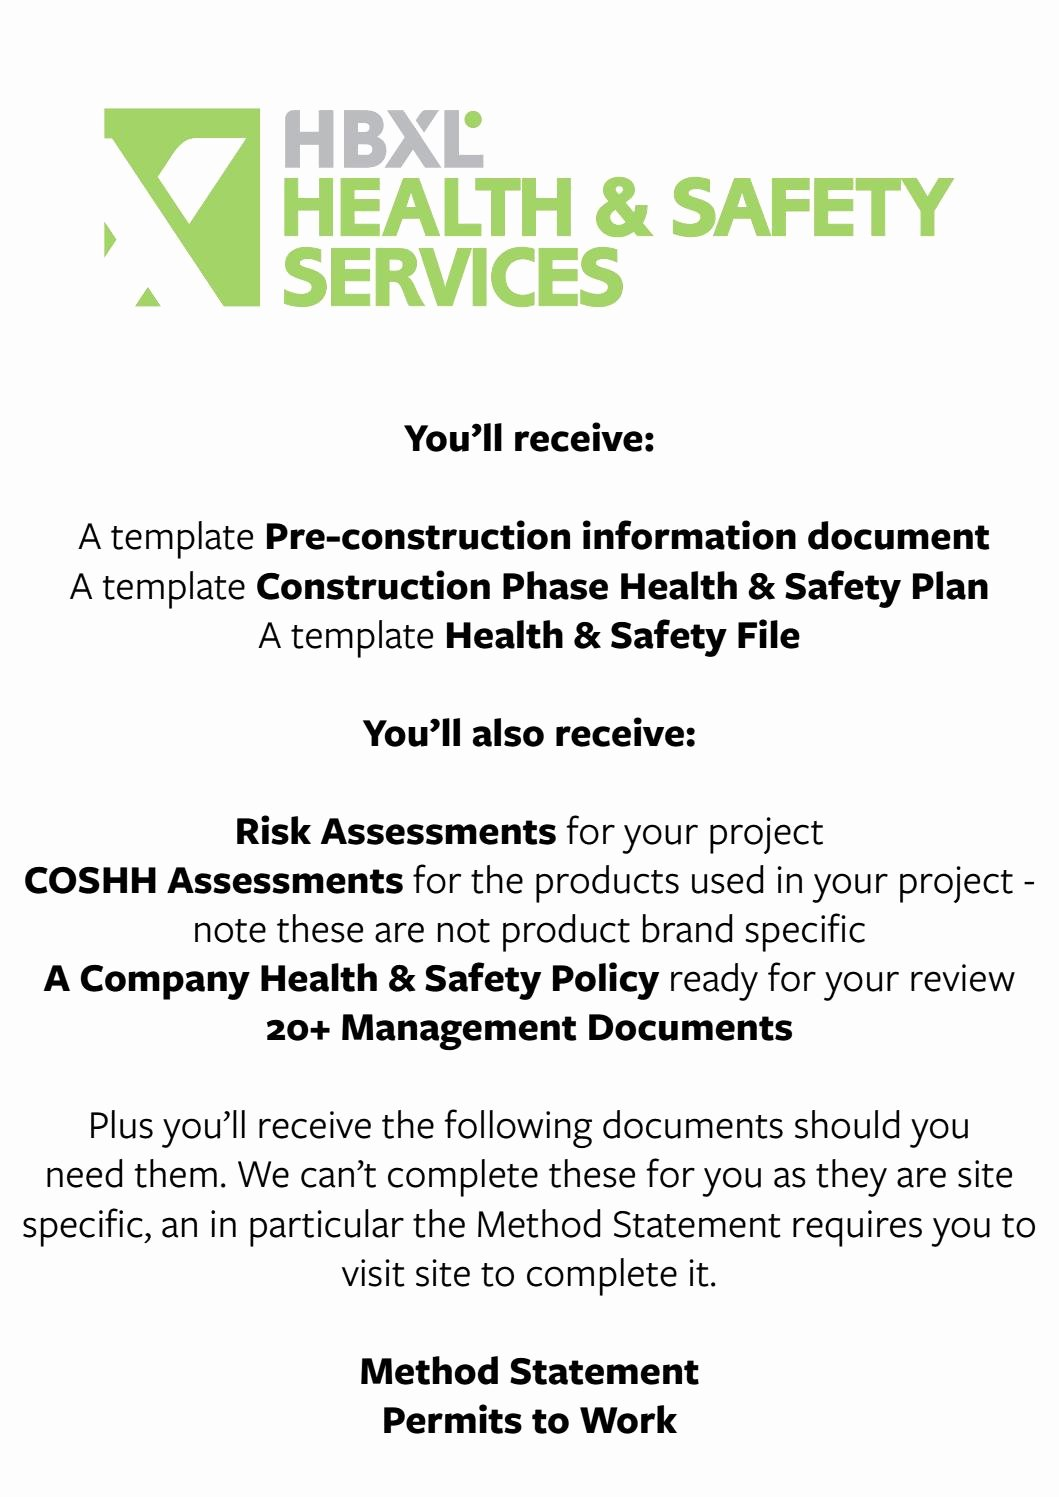 Site Safety Plan Template Awesome Health & Safety Pack Sample by Hbxl Estimating Service issuu